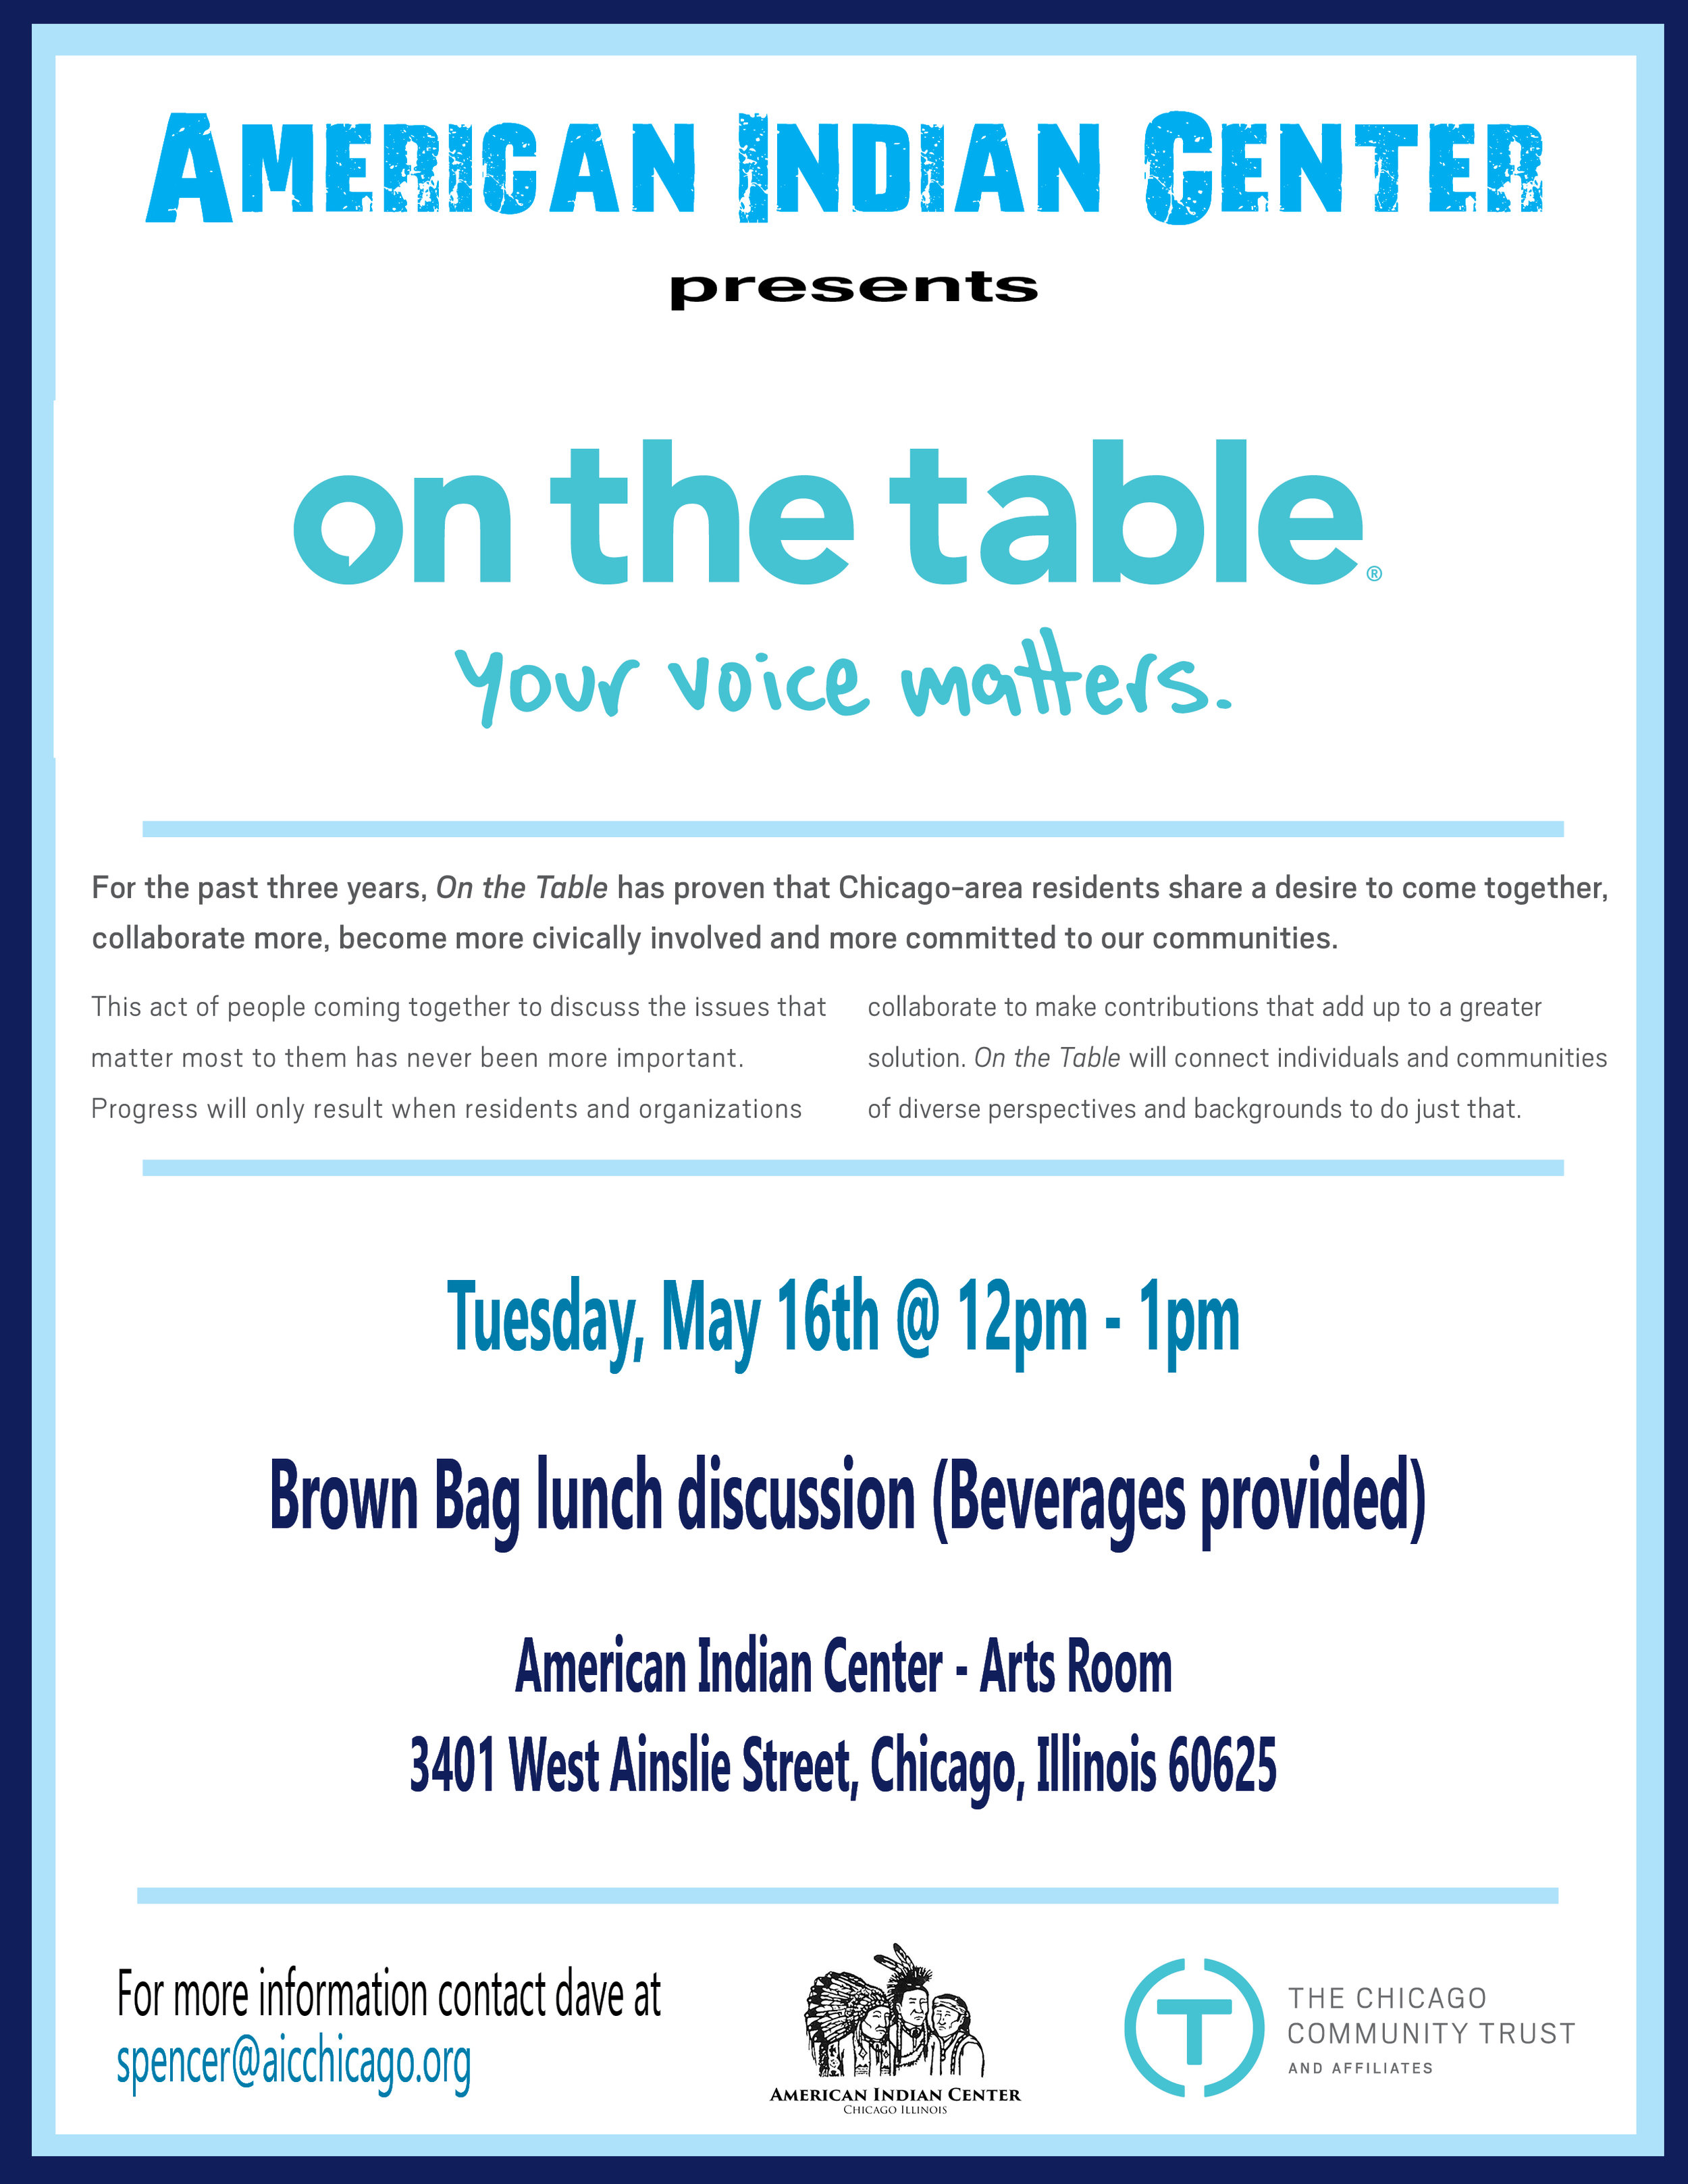 On the Table... Join the American Indian Center staff in a discussion of community programs, new ideas and planning. This will be a Brown Bag Lunch gathering. Beverages provided.  Tuesday, May 16th @ 12pm   AIC Arts Room 3401 West Ainslie Street  Questions? Contact dave at spencer@aicchicago.org